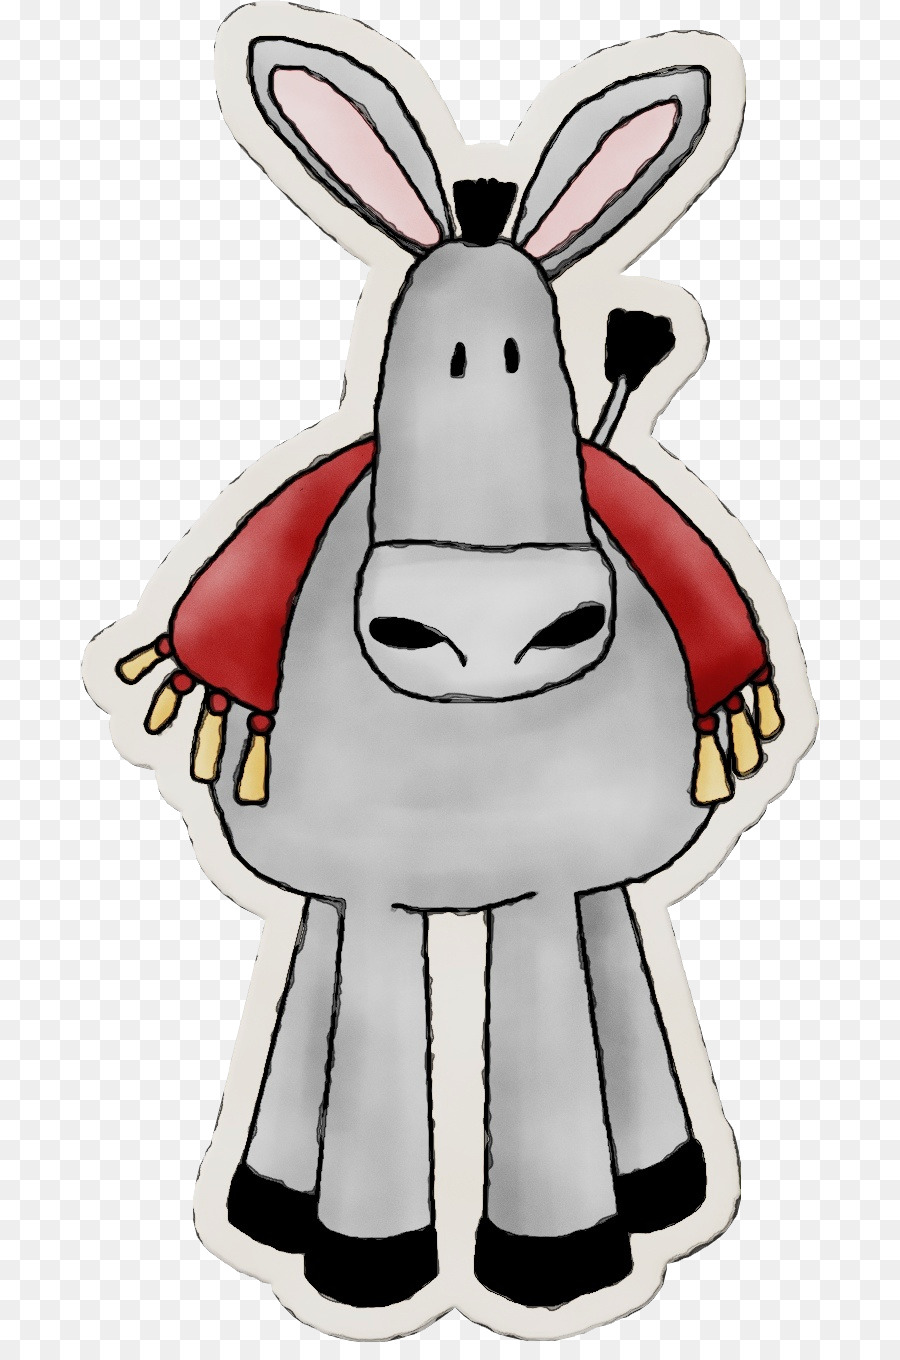 Mule clipart palm sunday. Donkey